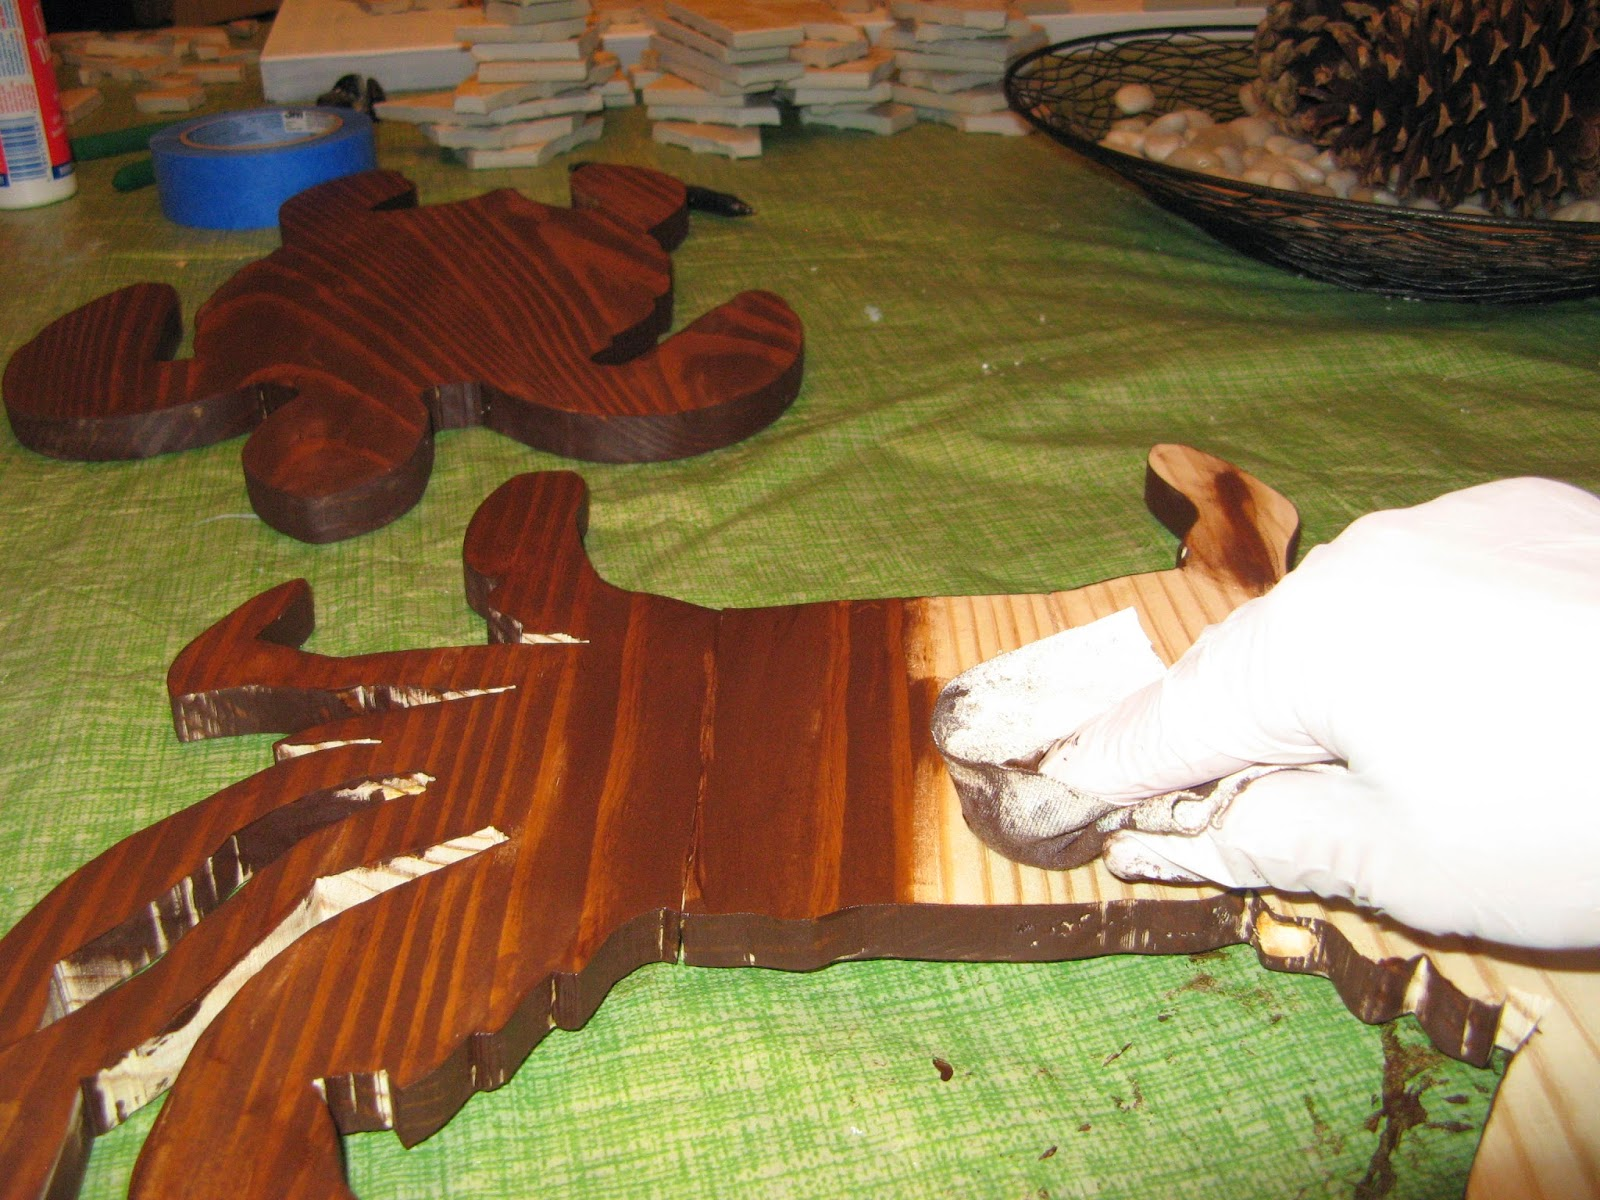 SEA CREATURE DECOR - Staining the Wood